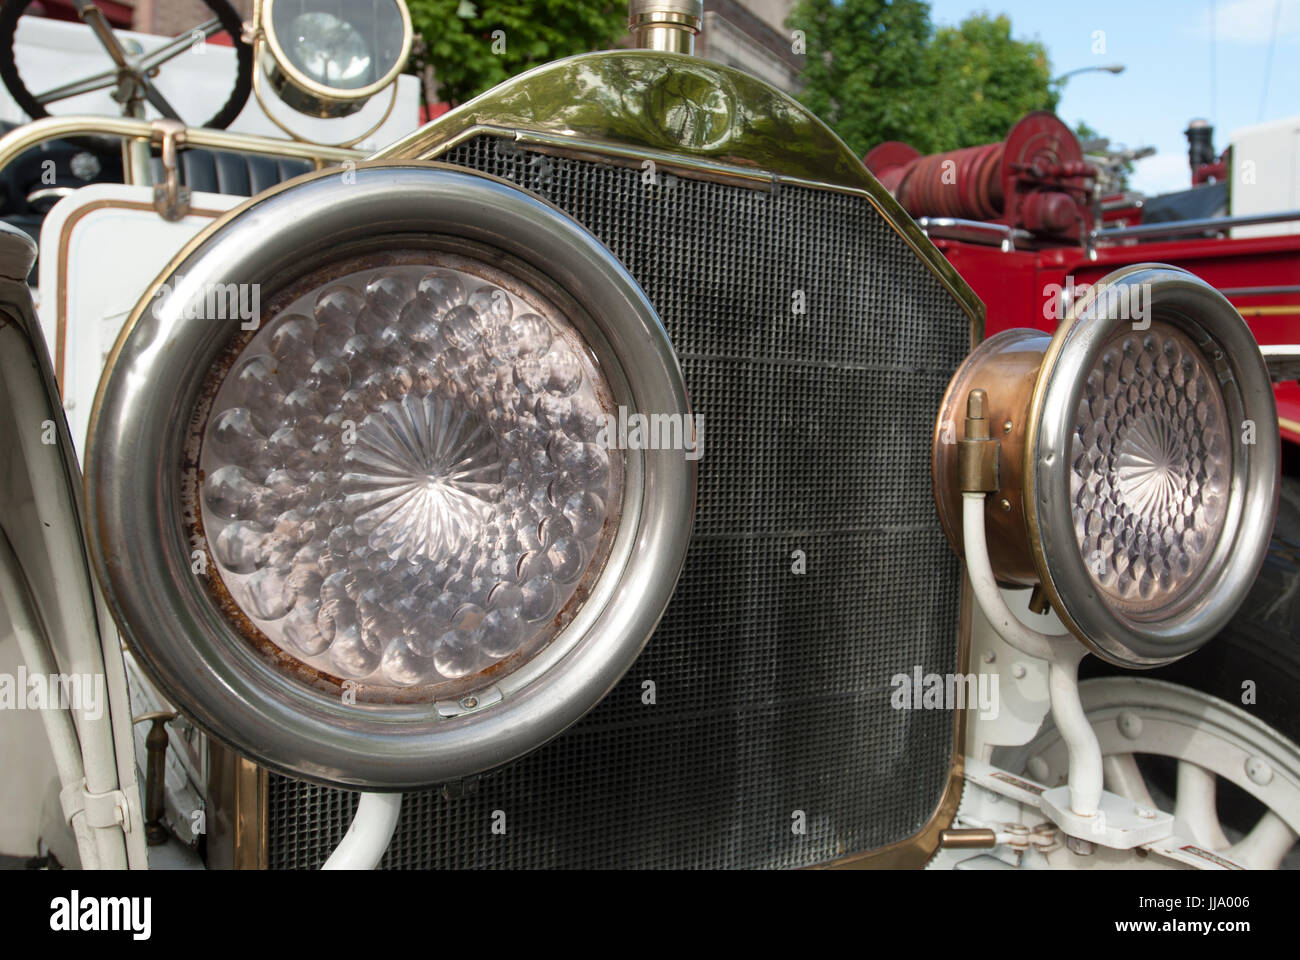 Close-up of headlamps of an 1920 American LaFrance vintage firetruck. - Stock Image